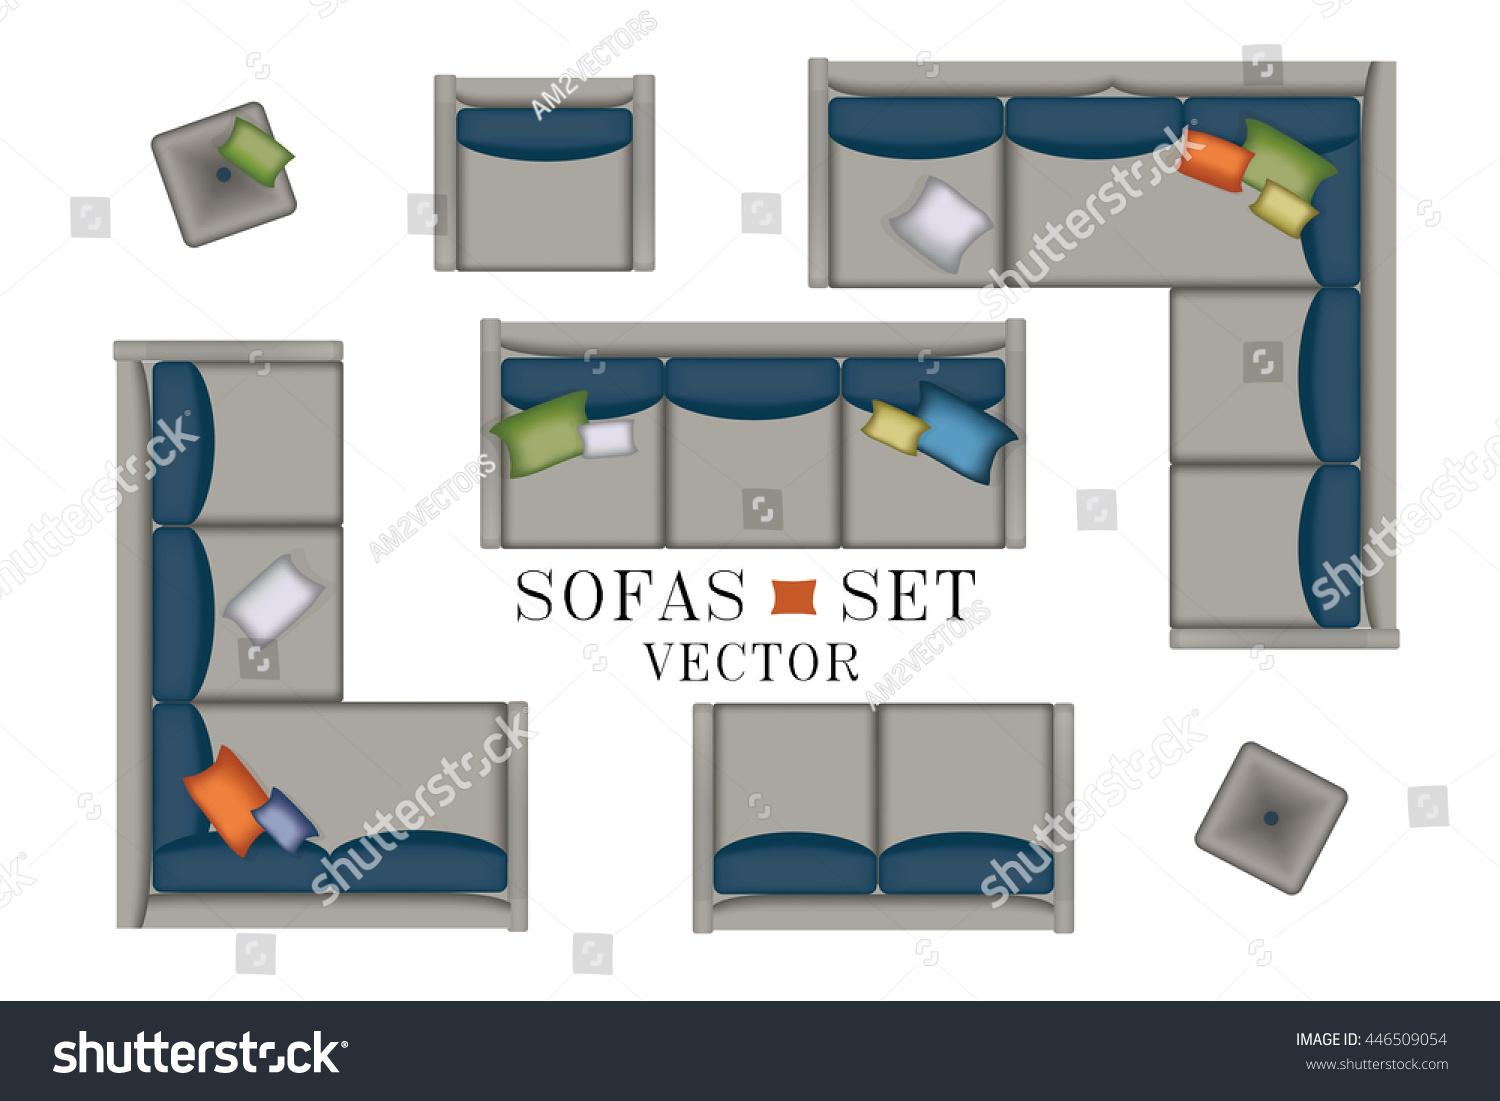 Sofa Top View Sofas Armchair Set Stock Vector 446509054  : stock vector sofa top view sofas and armchair set realistic illustration modern luxury living room furniture 446509054 from www.shutterstock.com size 1500 x 1101 jpeg 241kB